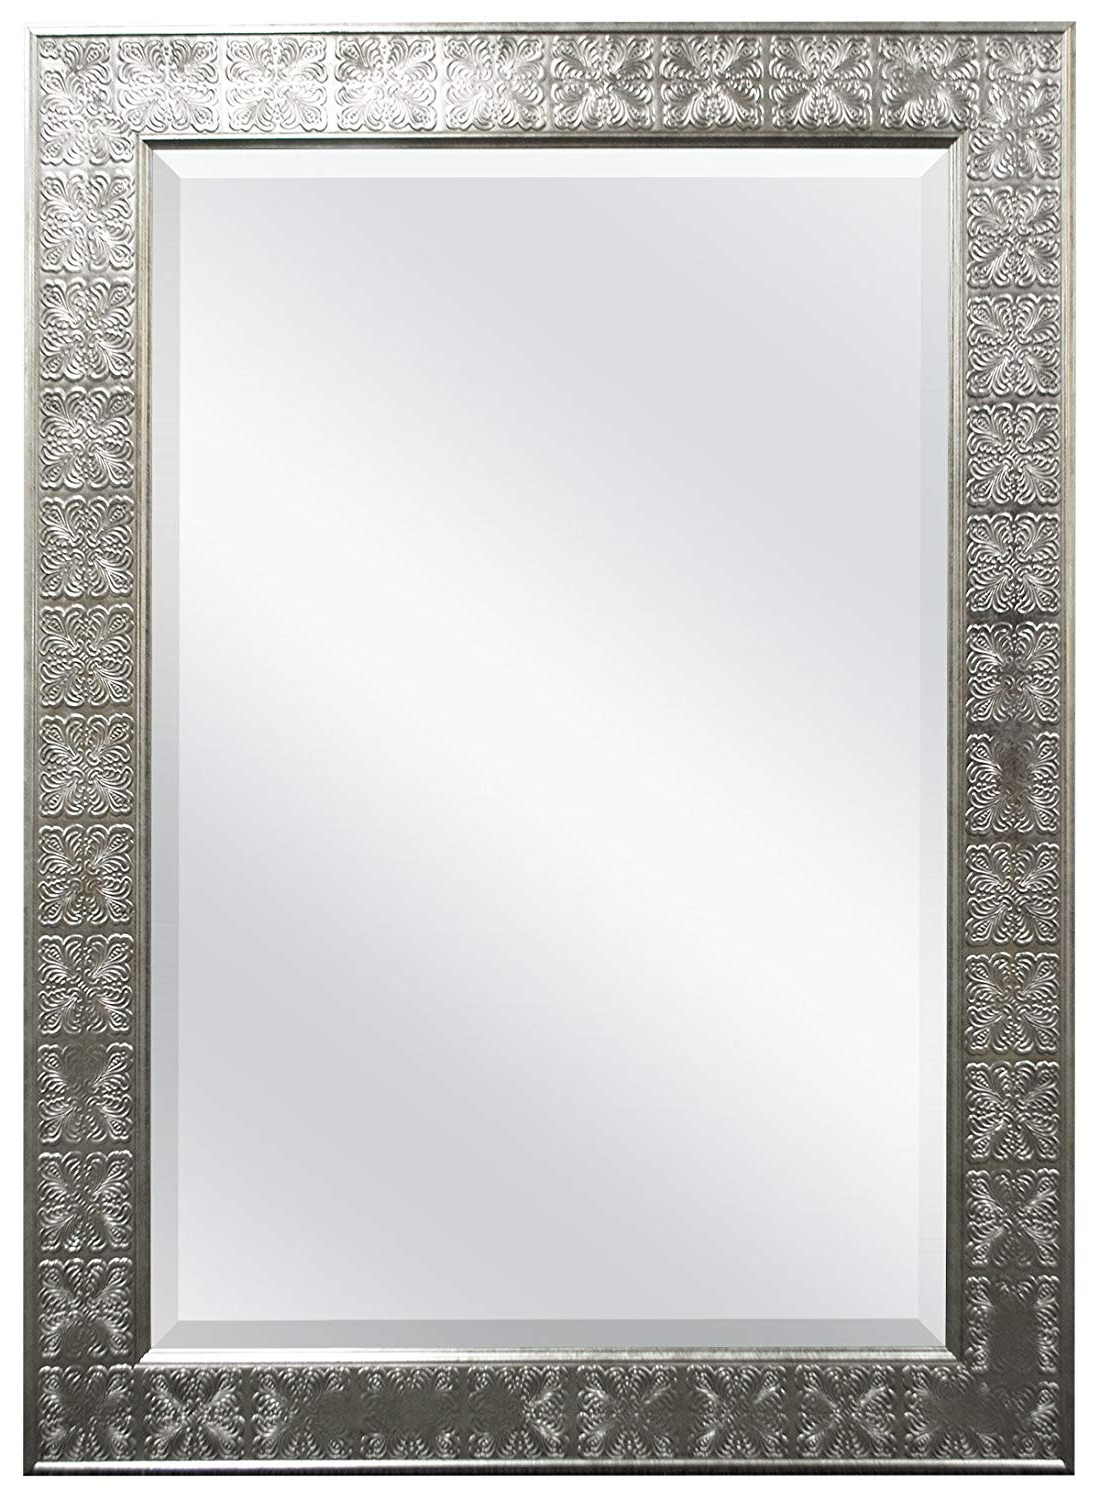 Most Up To Date 24 X 36 Wall Mirrors With Regard To Mcs 24X36 Inch Stamped Medallion Wall Mirror, 32X44 Inch Overall Size,  Champagne Silver (47700), 3244 Inch, (View 16 of 20)